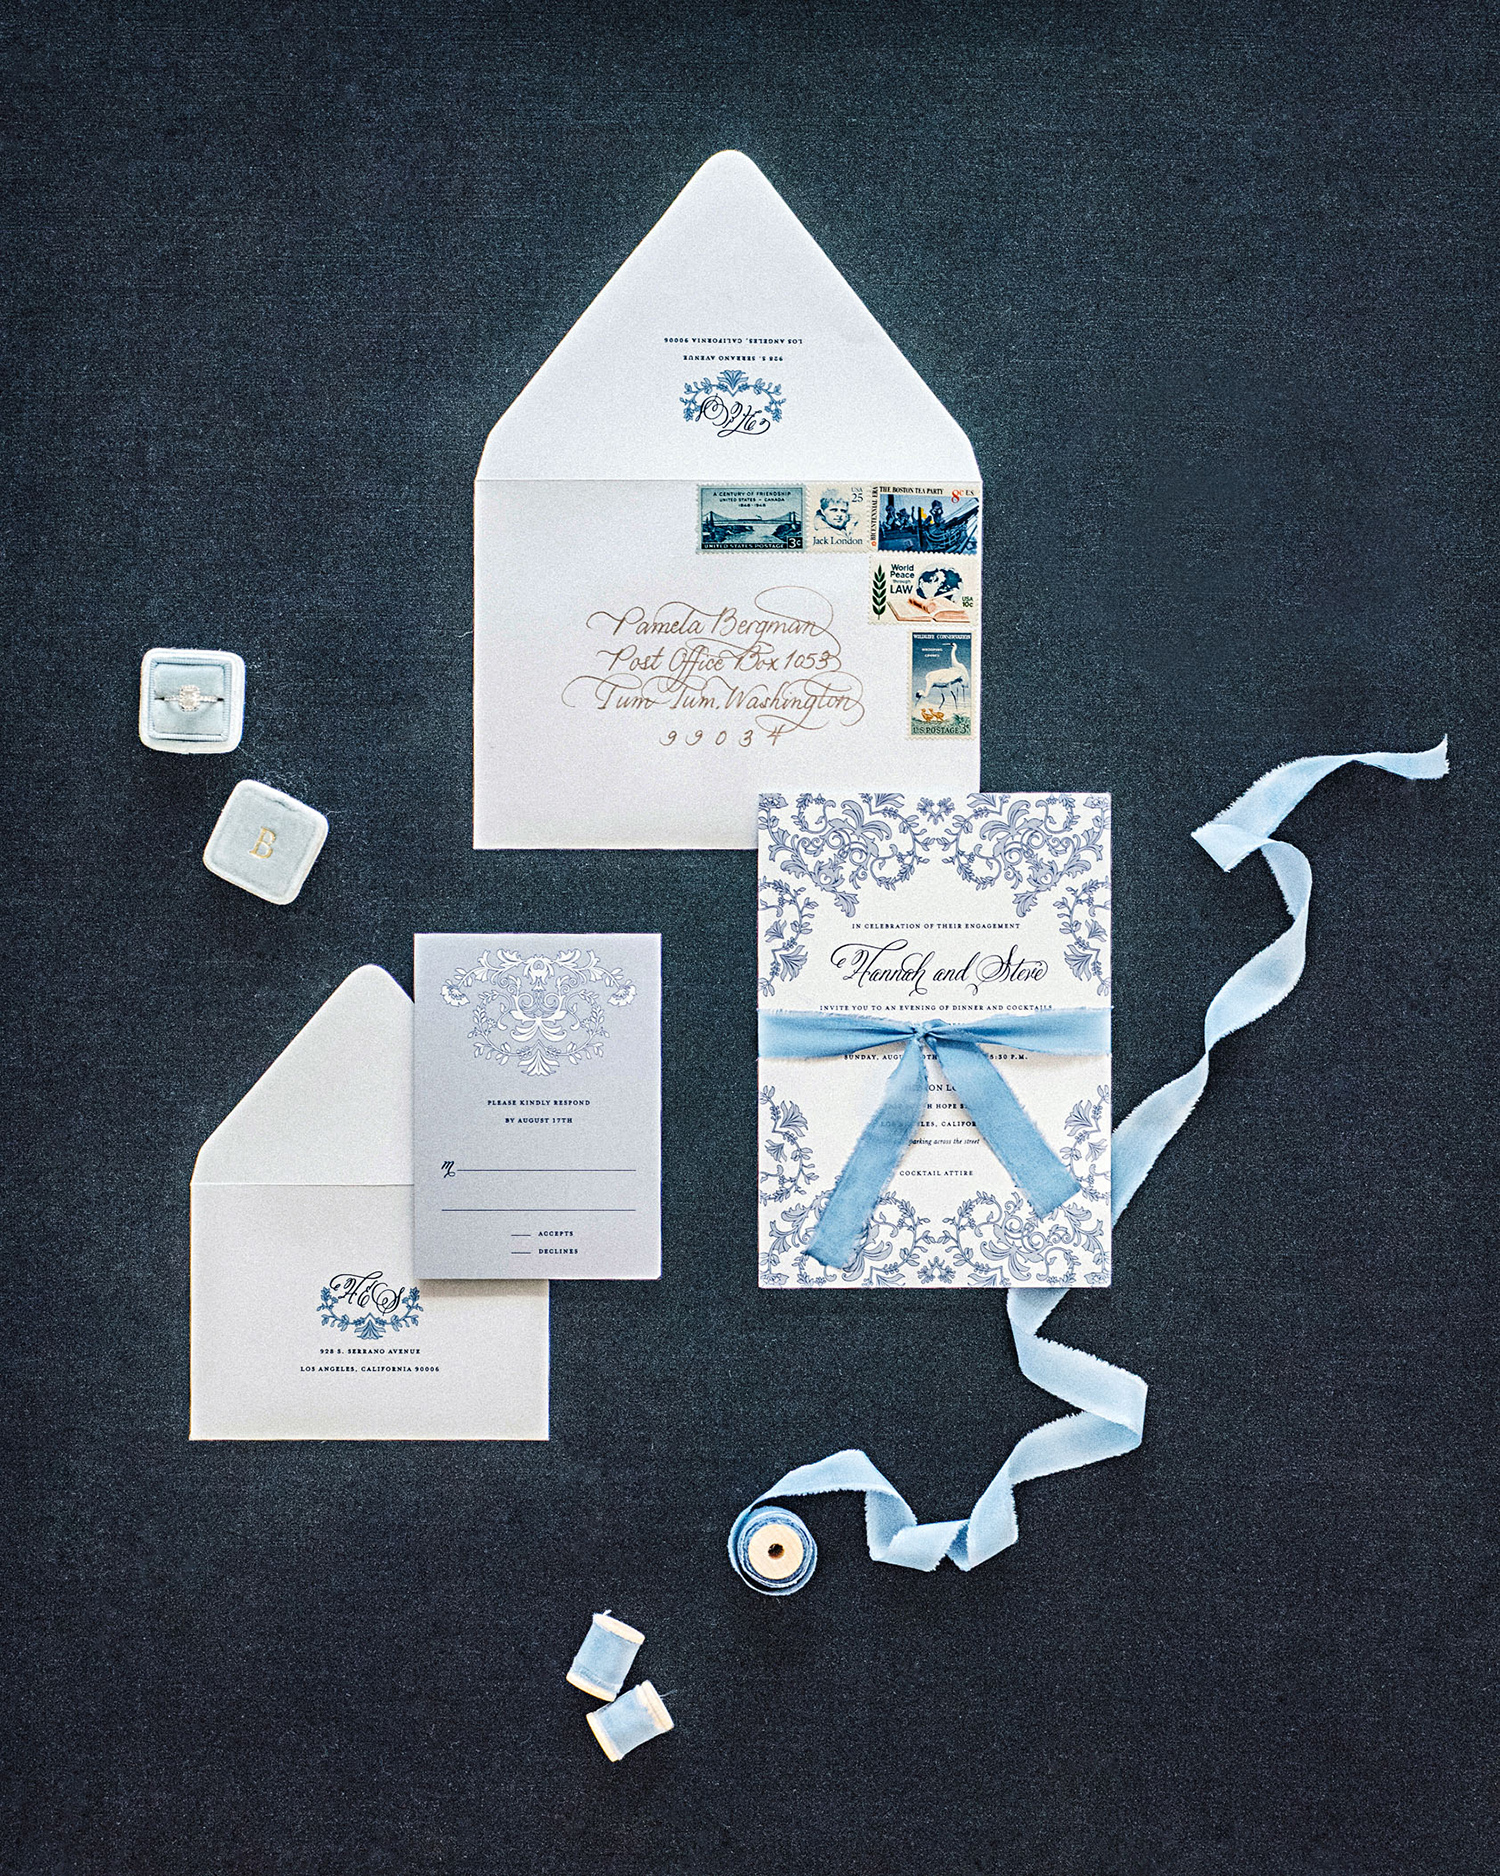 How Should You Send Engagement Party Invitations?